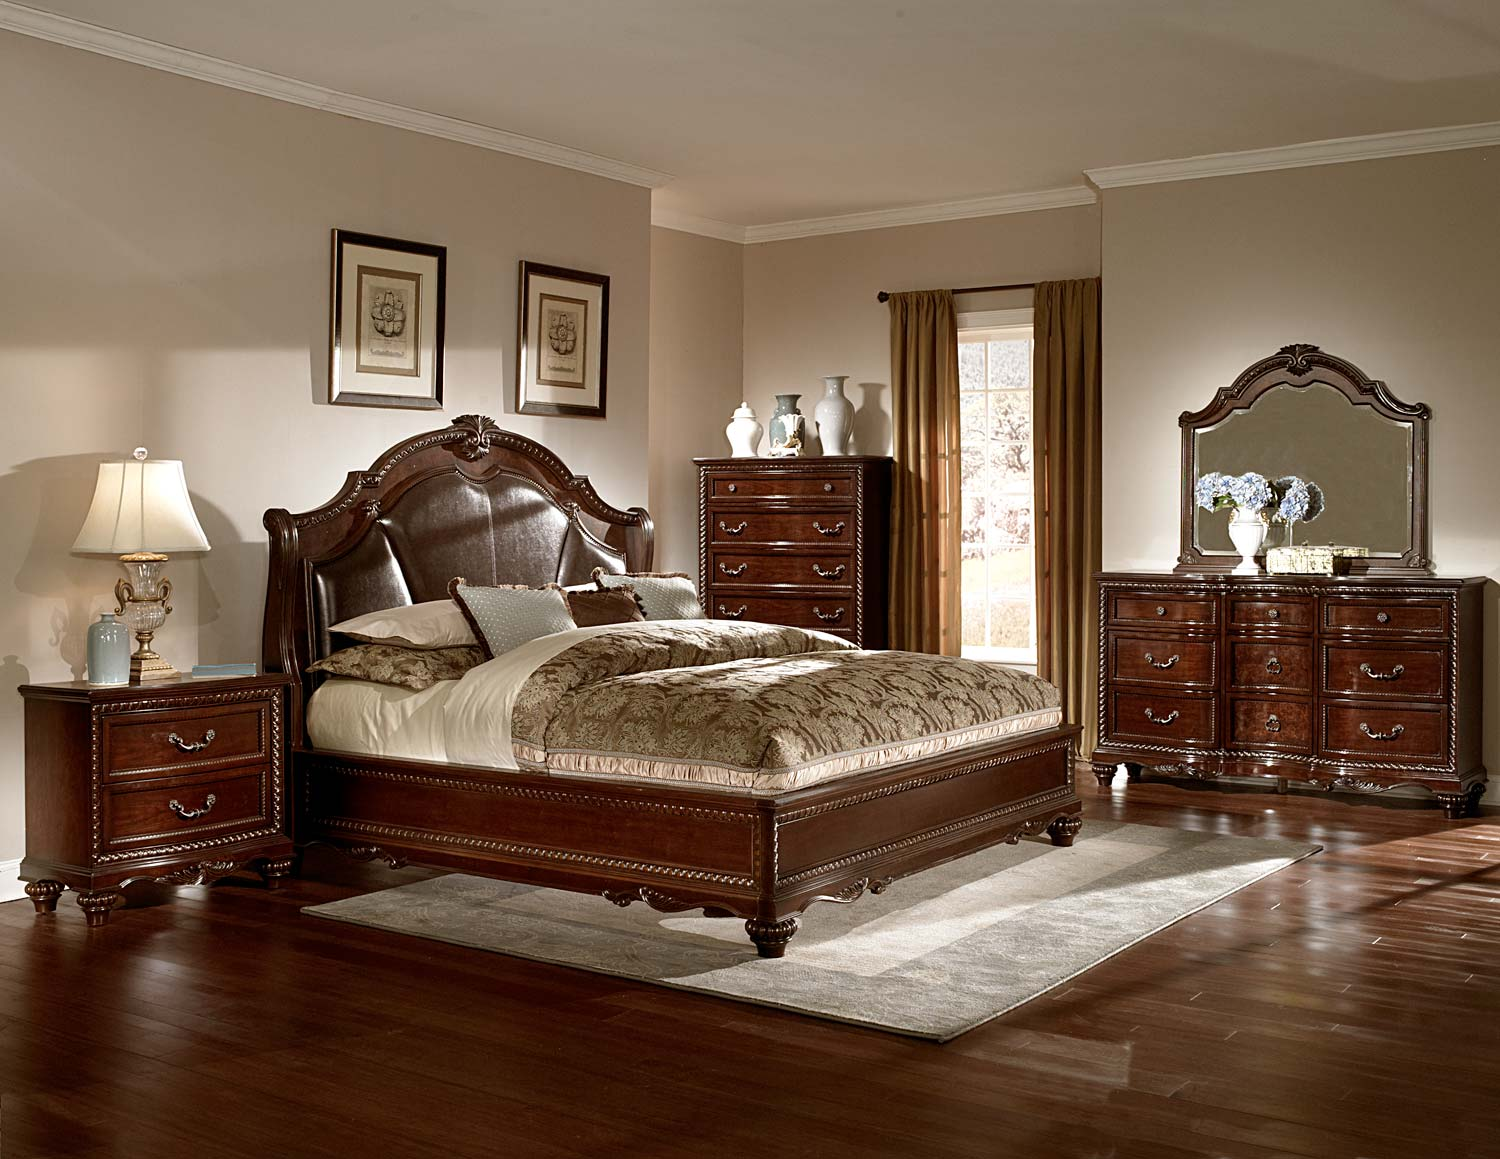 Homelegance hampstead court bedroom set cherry b2214 bed for Bed settings